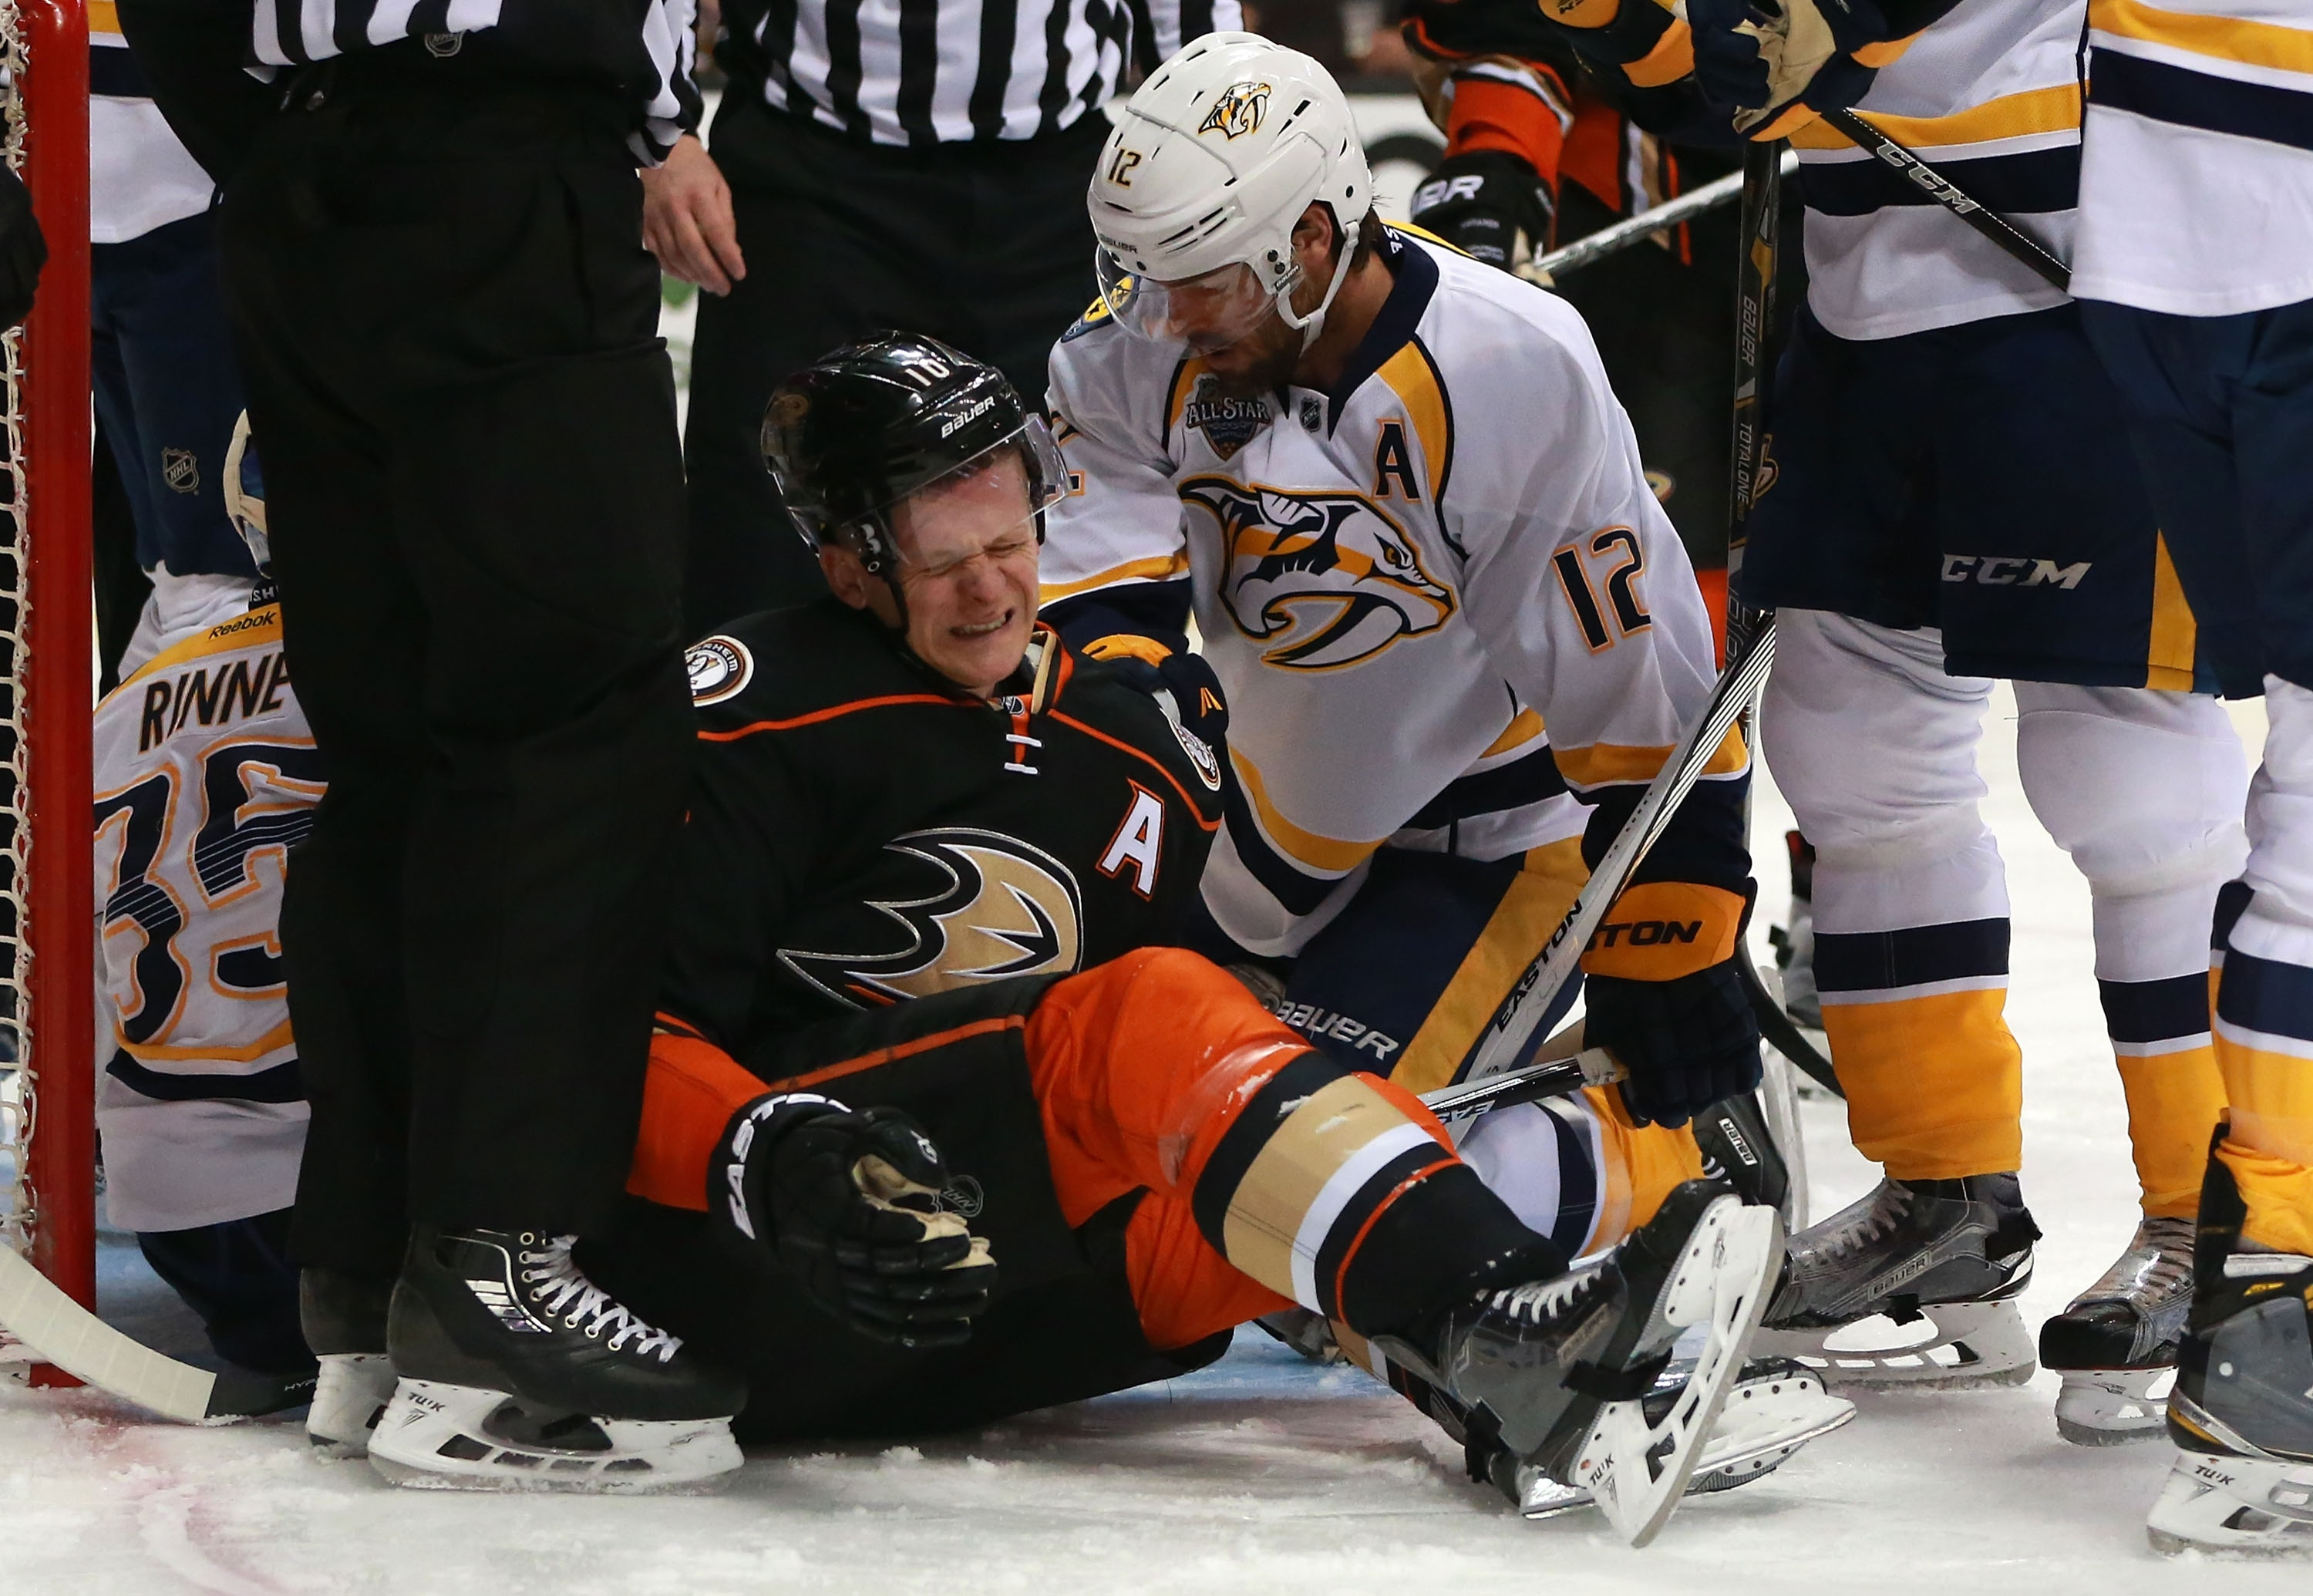 ANAHEIM, CA - APRIL 23: Corey Perry #10 of the Anaheim Ducks winces in pain after a play where he was check hard to the ice into the Predators crease area as Mike Fisher #12 of the Nashville Predators looks on in the first period of Game Five of the Western Conference First Round during the 2016 NHL Stanley Cup Playoffs at Honda Center on April 23, 2016 in Anaheim, California. The Ducks defeated the Predators 5-2. (Photo by Victor Decolongon/Getty Images)